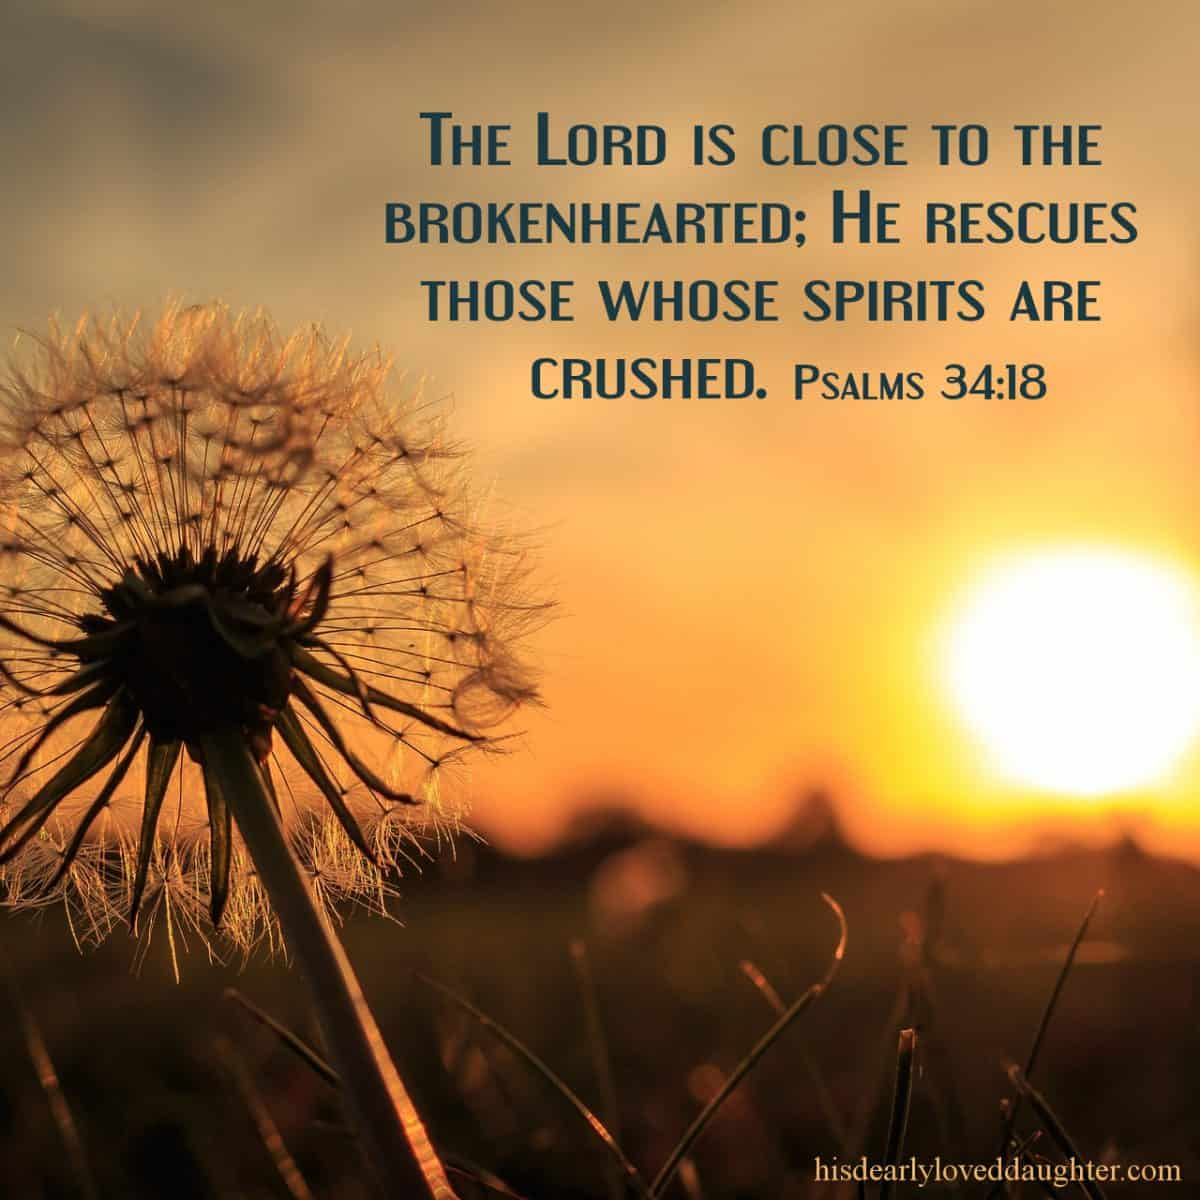 The Lord is close to the brokenhearted; He rescues those whose spirits are crushed. Psalms 34:18